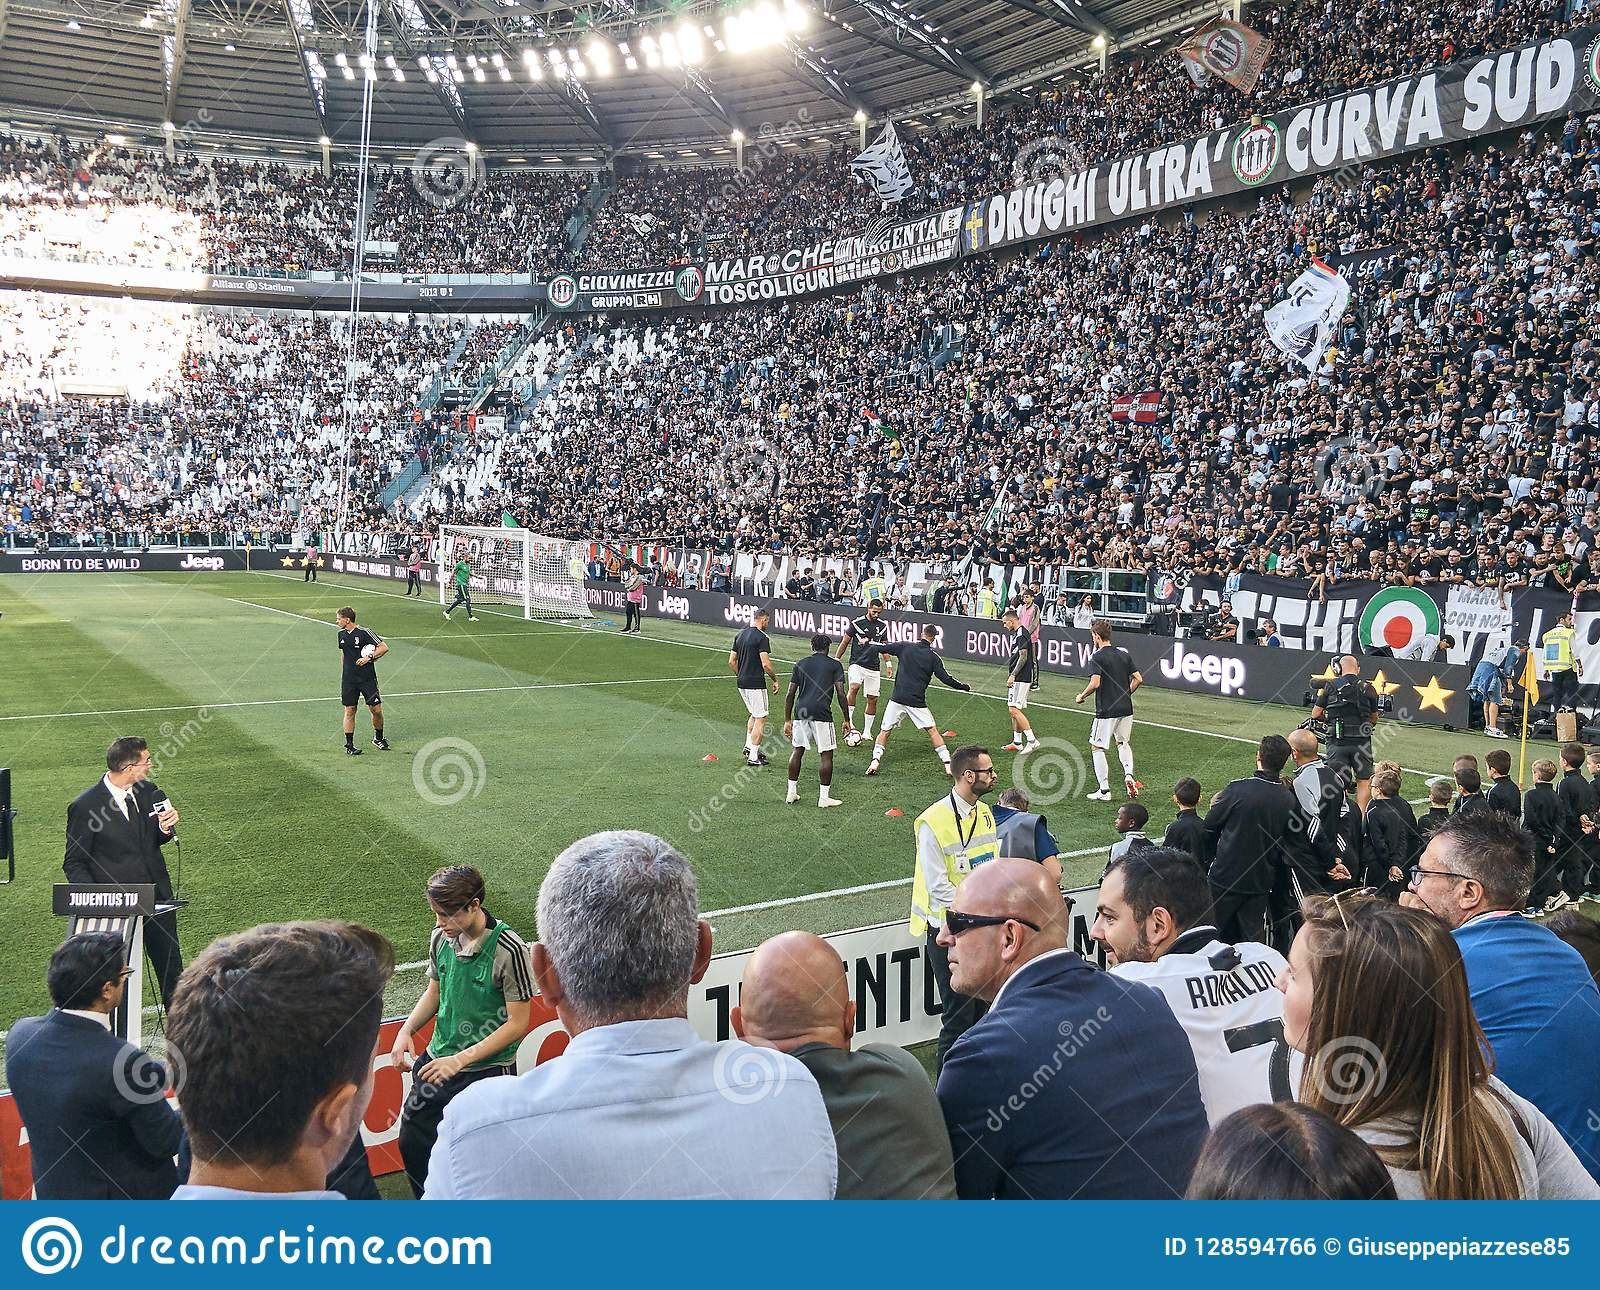 view of the allianz stadium the juventus home field editorial photo image of entrance background 128594766 https www dreamstime com turin italy september players training match allianz stadium field where juventus plays its home matches image128594766